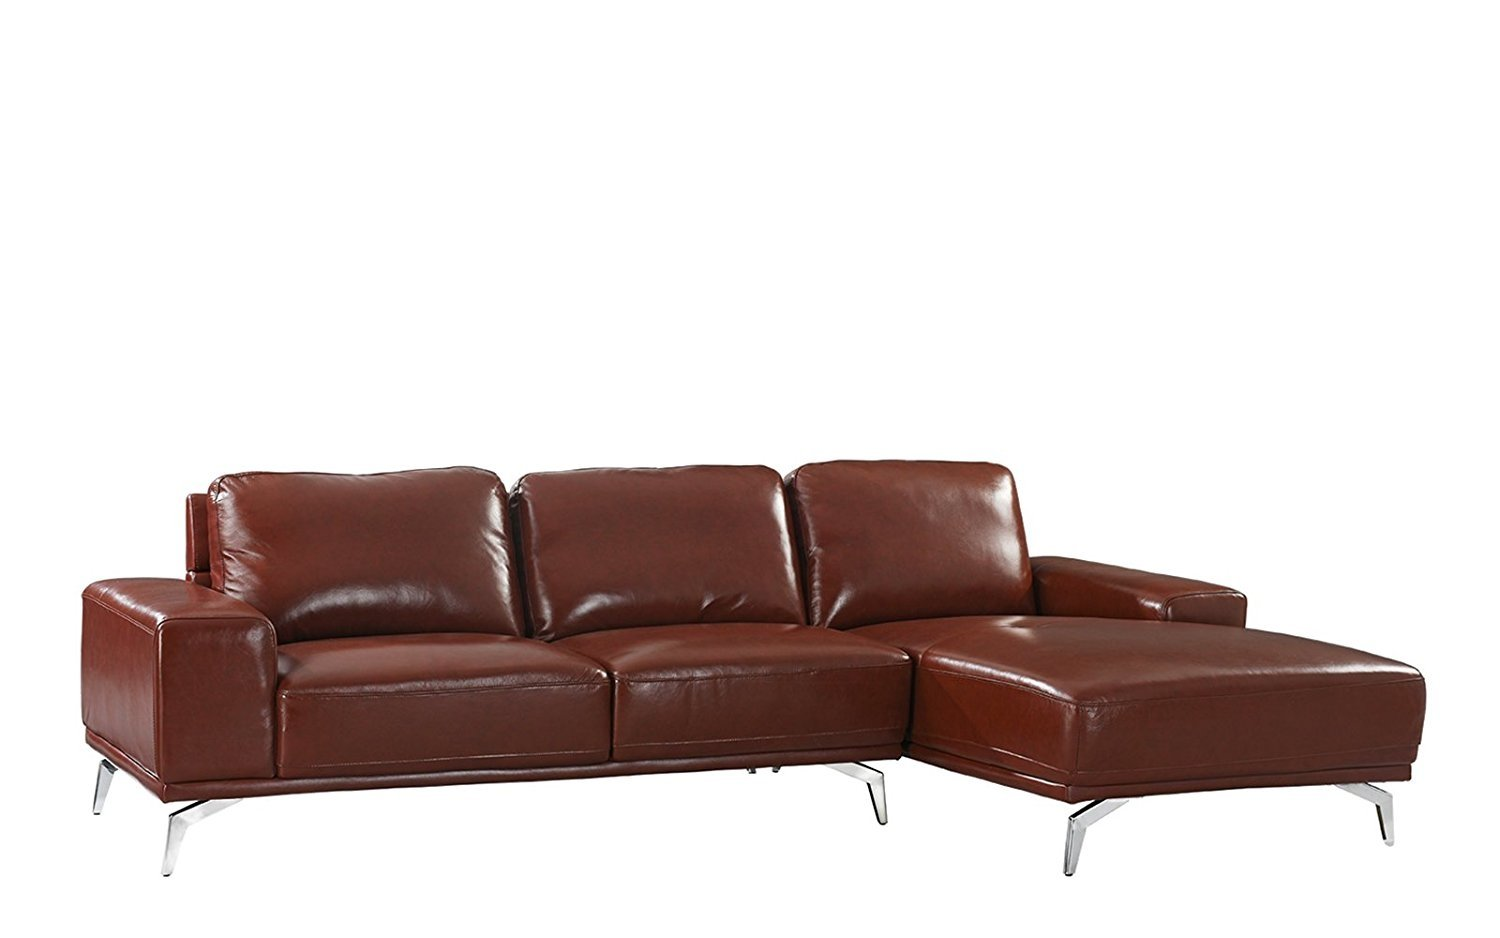 Modern Leather Sectional Sofa L Shape Couch W Right Facing Chaise